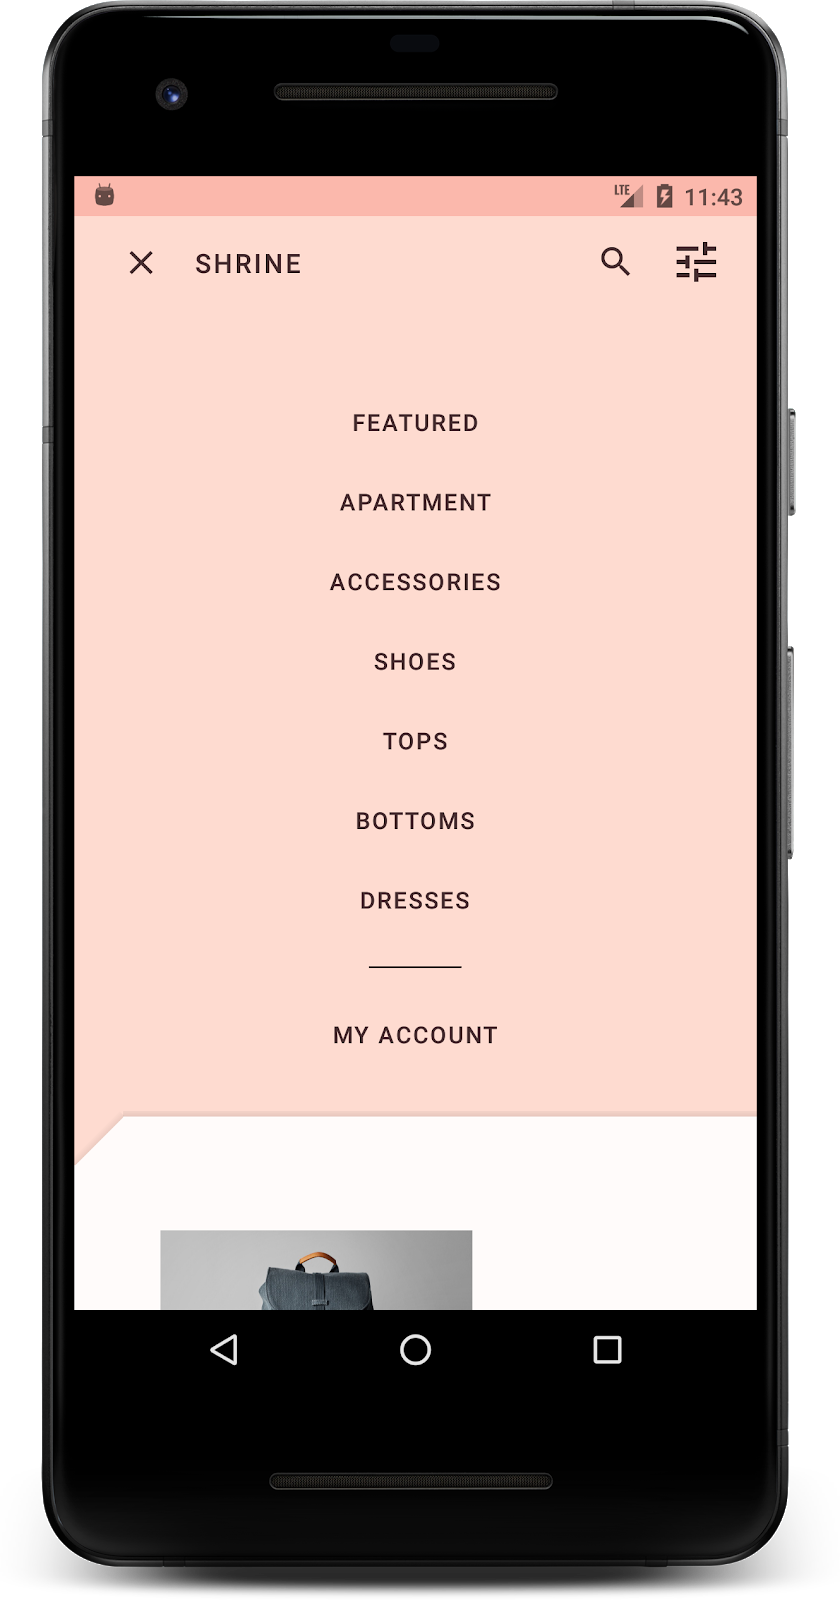 This is the third of 4 codelabs that will guide you through building an app  called Shrine, an e-commerce app that sells clothing and home goods.